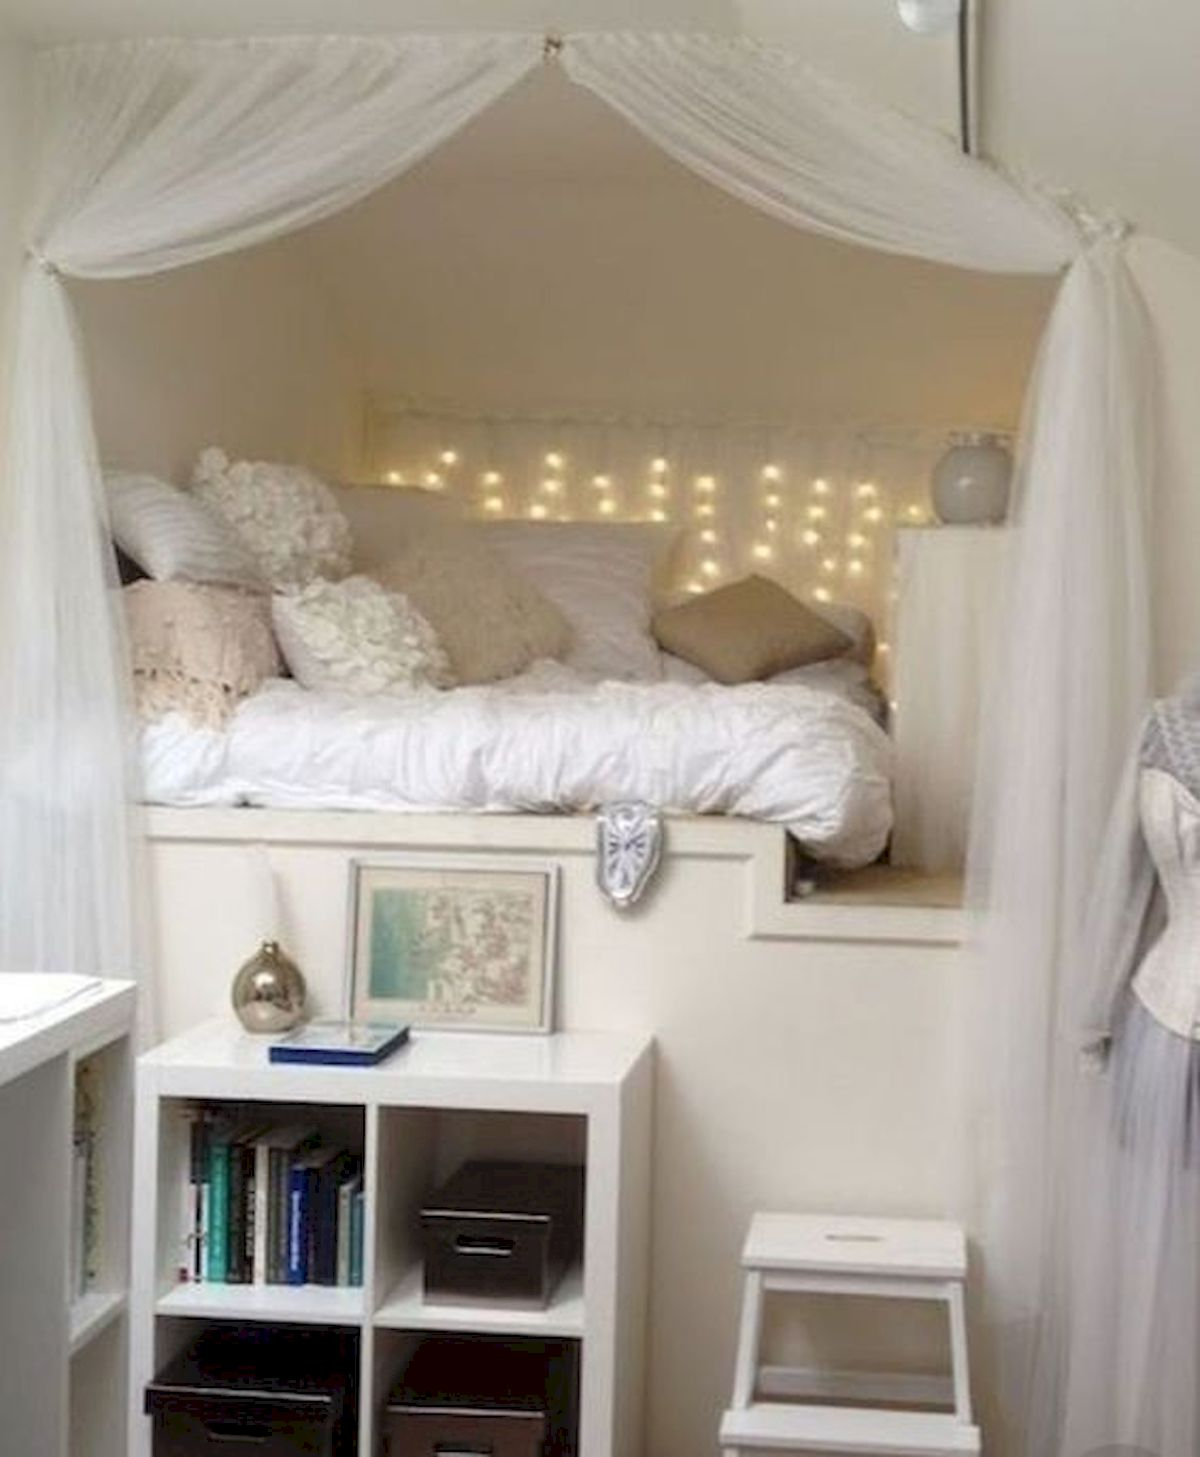 40 Awesome Attic Bedroom Design and Decorating Ideas (28)